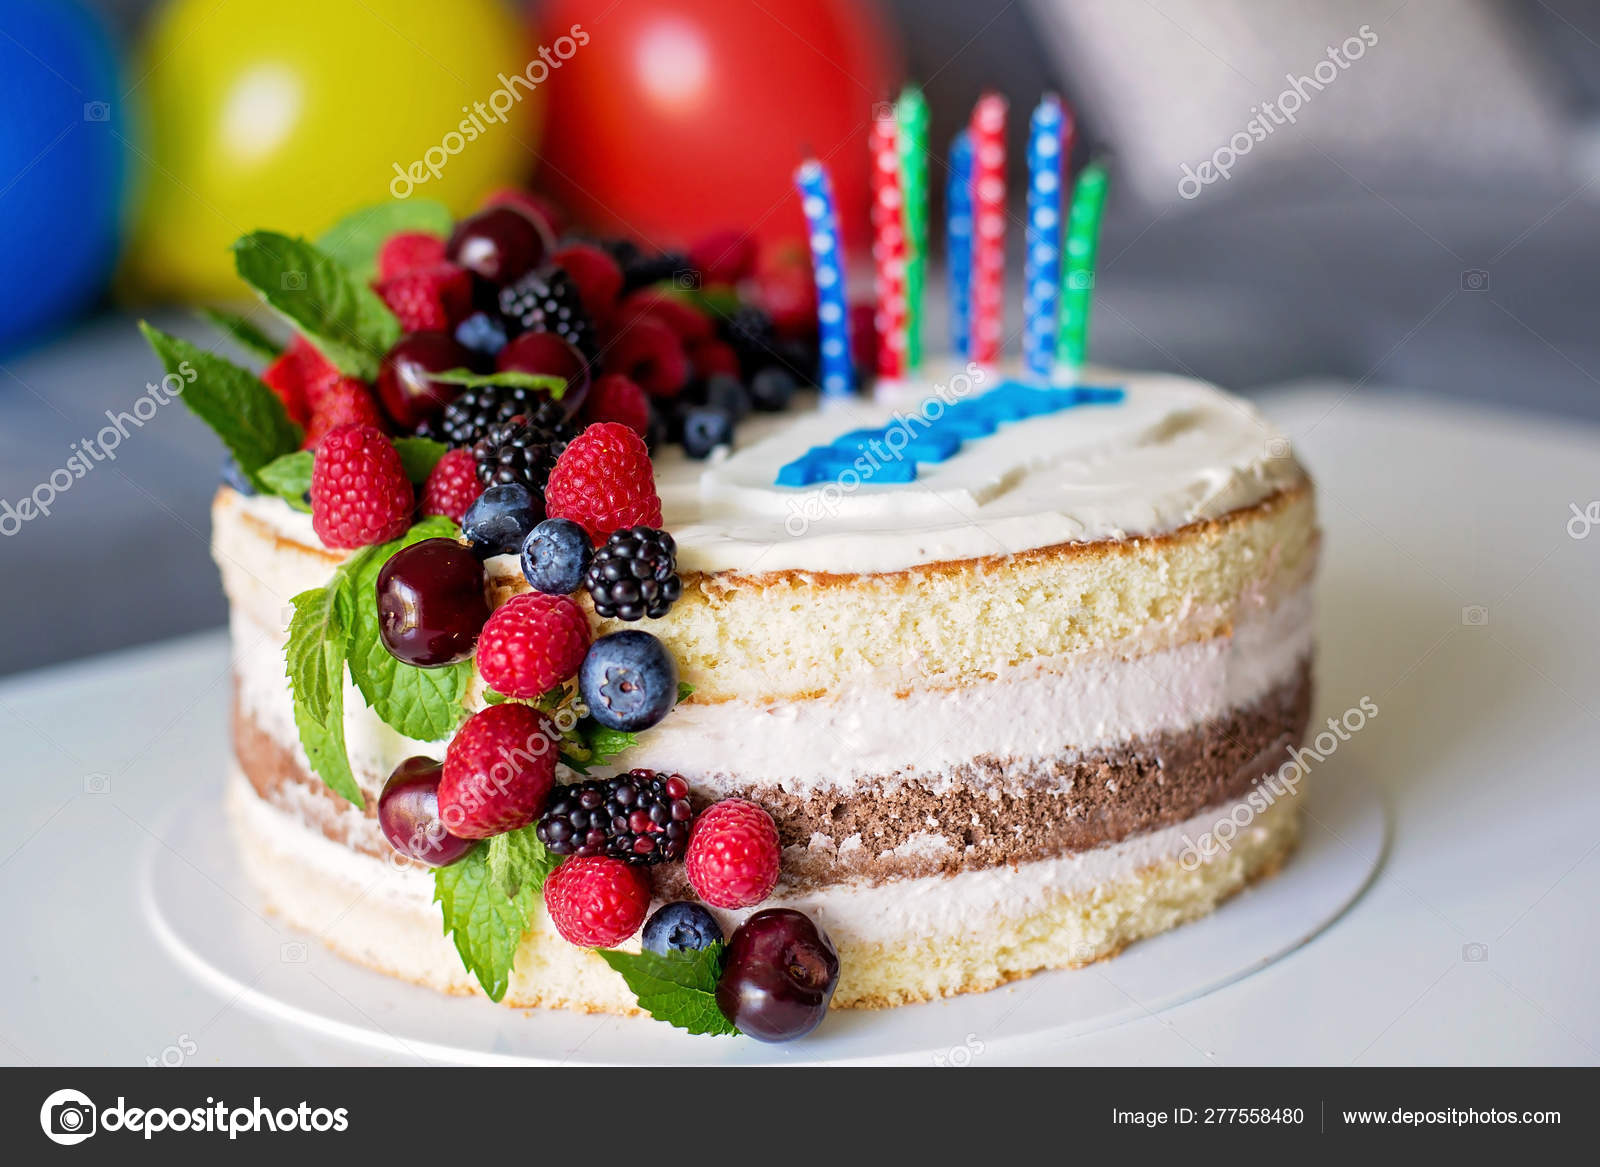 Awe Inspiring Homemade Kids Birthday Cake With Lots Of Fruits On Top Cherries Funny Birthday Cards Online Alyptdamsfinfo